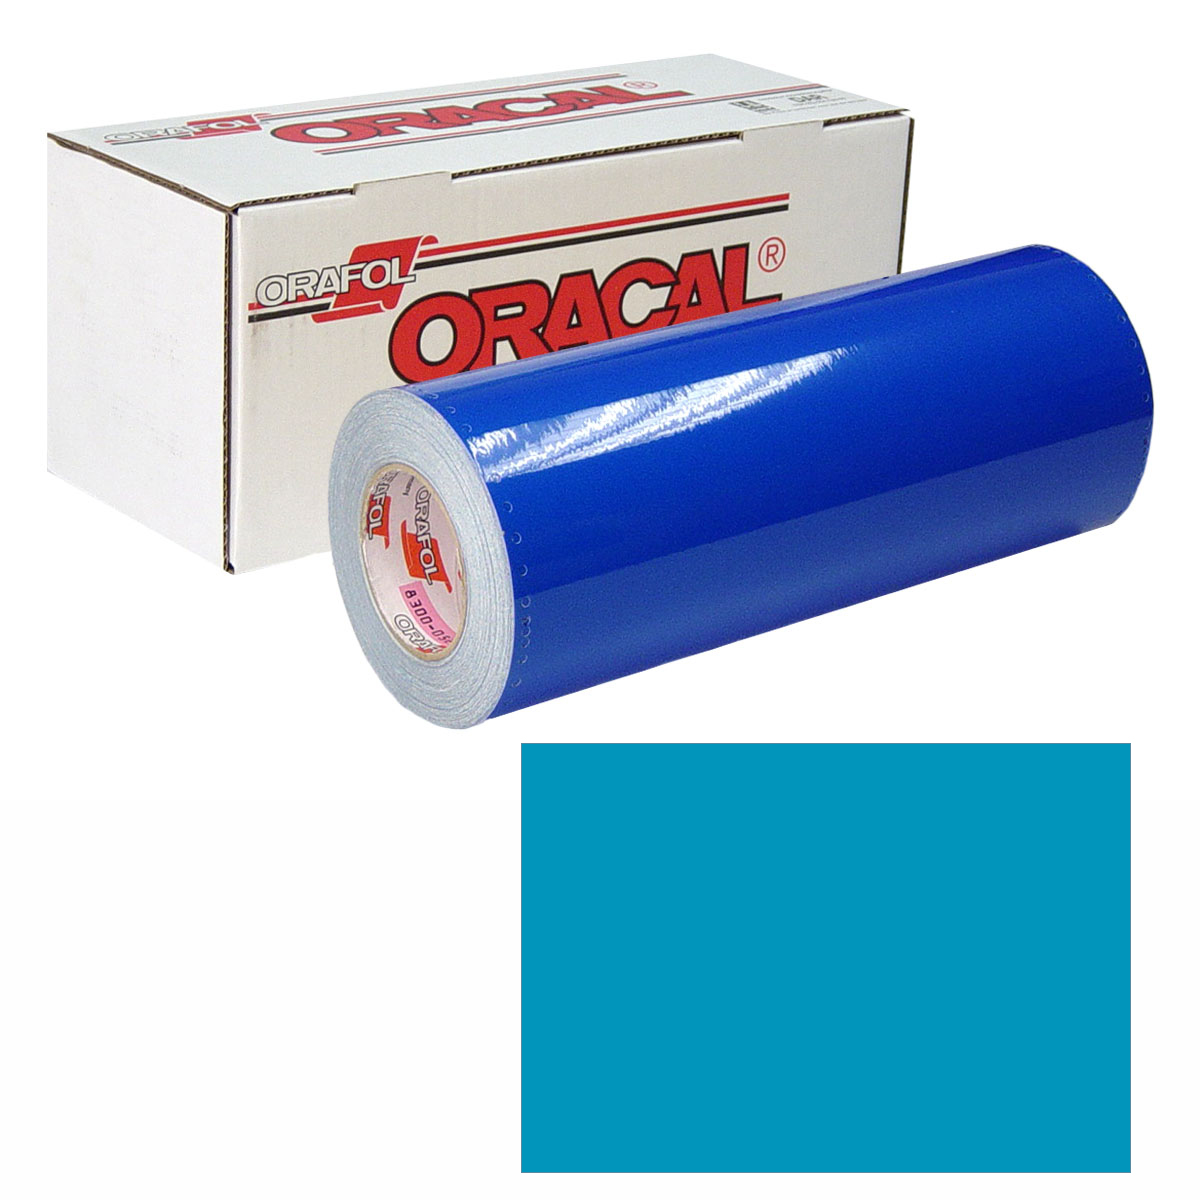 ORACAL 631 Unp 30In X 50Yd 174 Teal